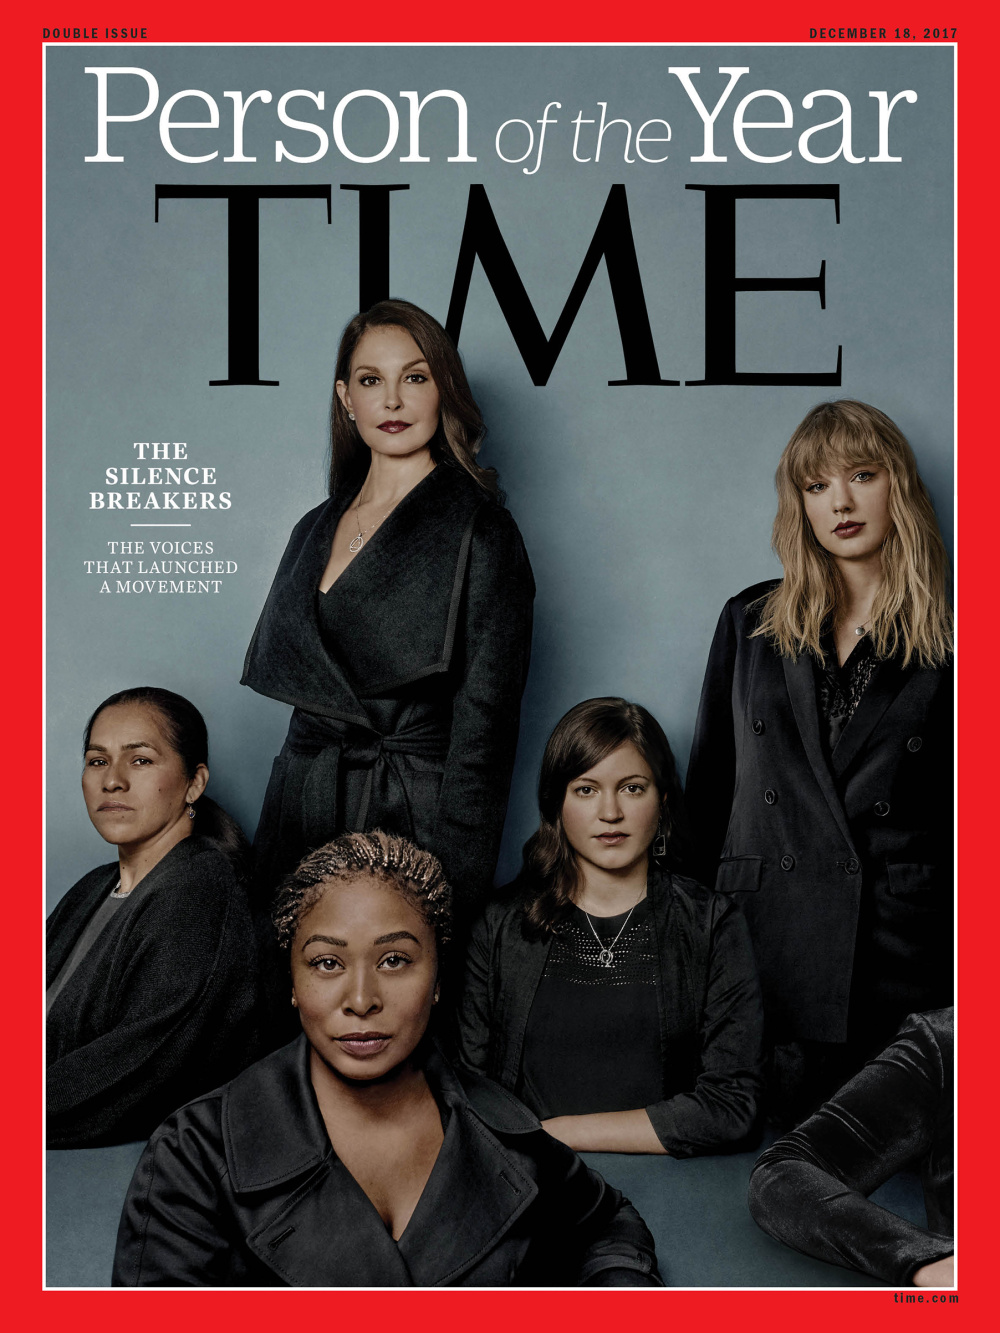 The 'Silence Breakers' Named Time's Person of the Year